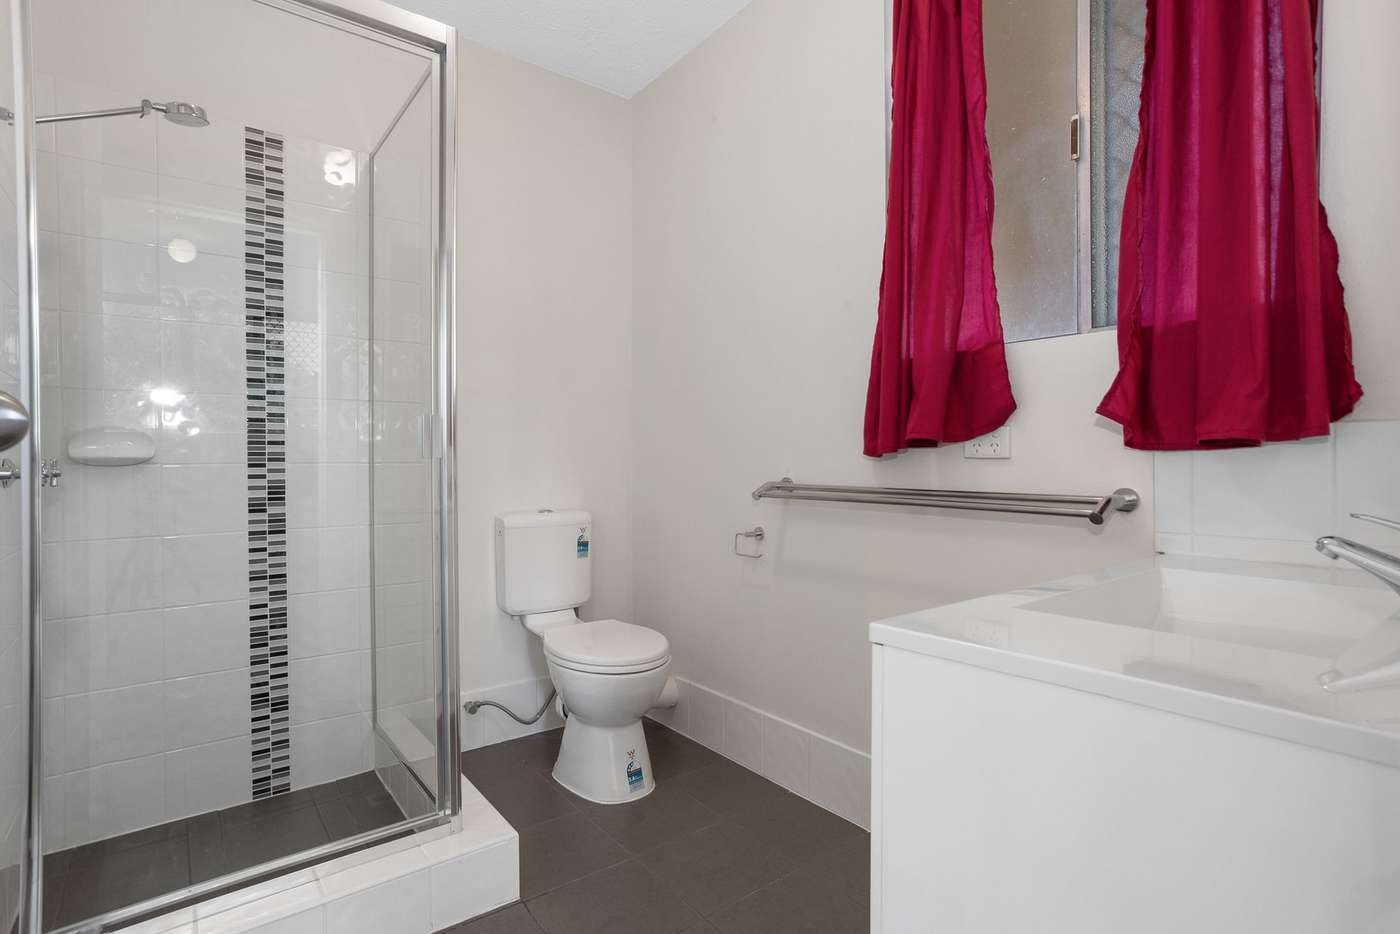 Sixth view of Homely unit listing, 2/31 Kidston Terrace, Chermside QLD 4032